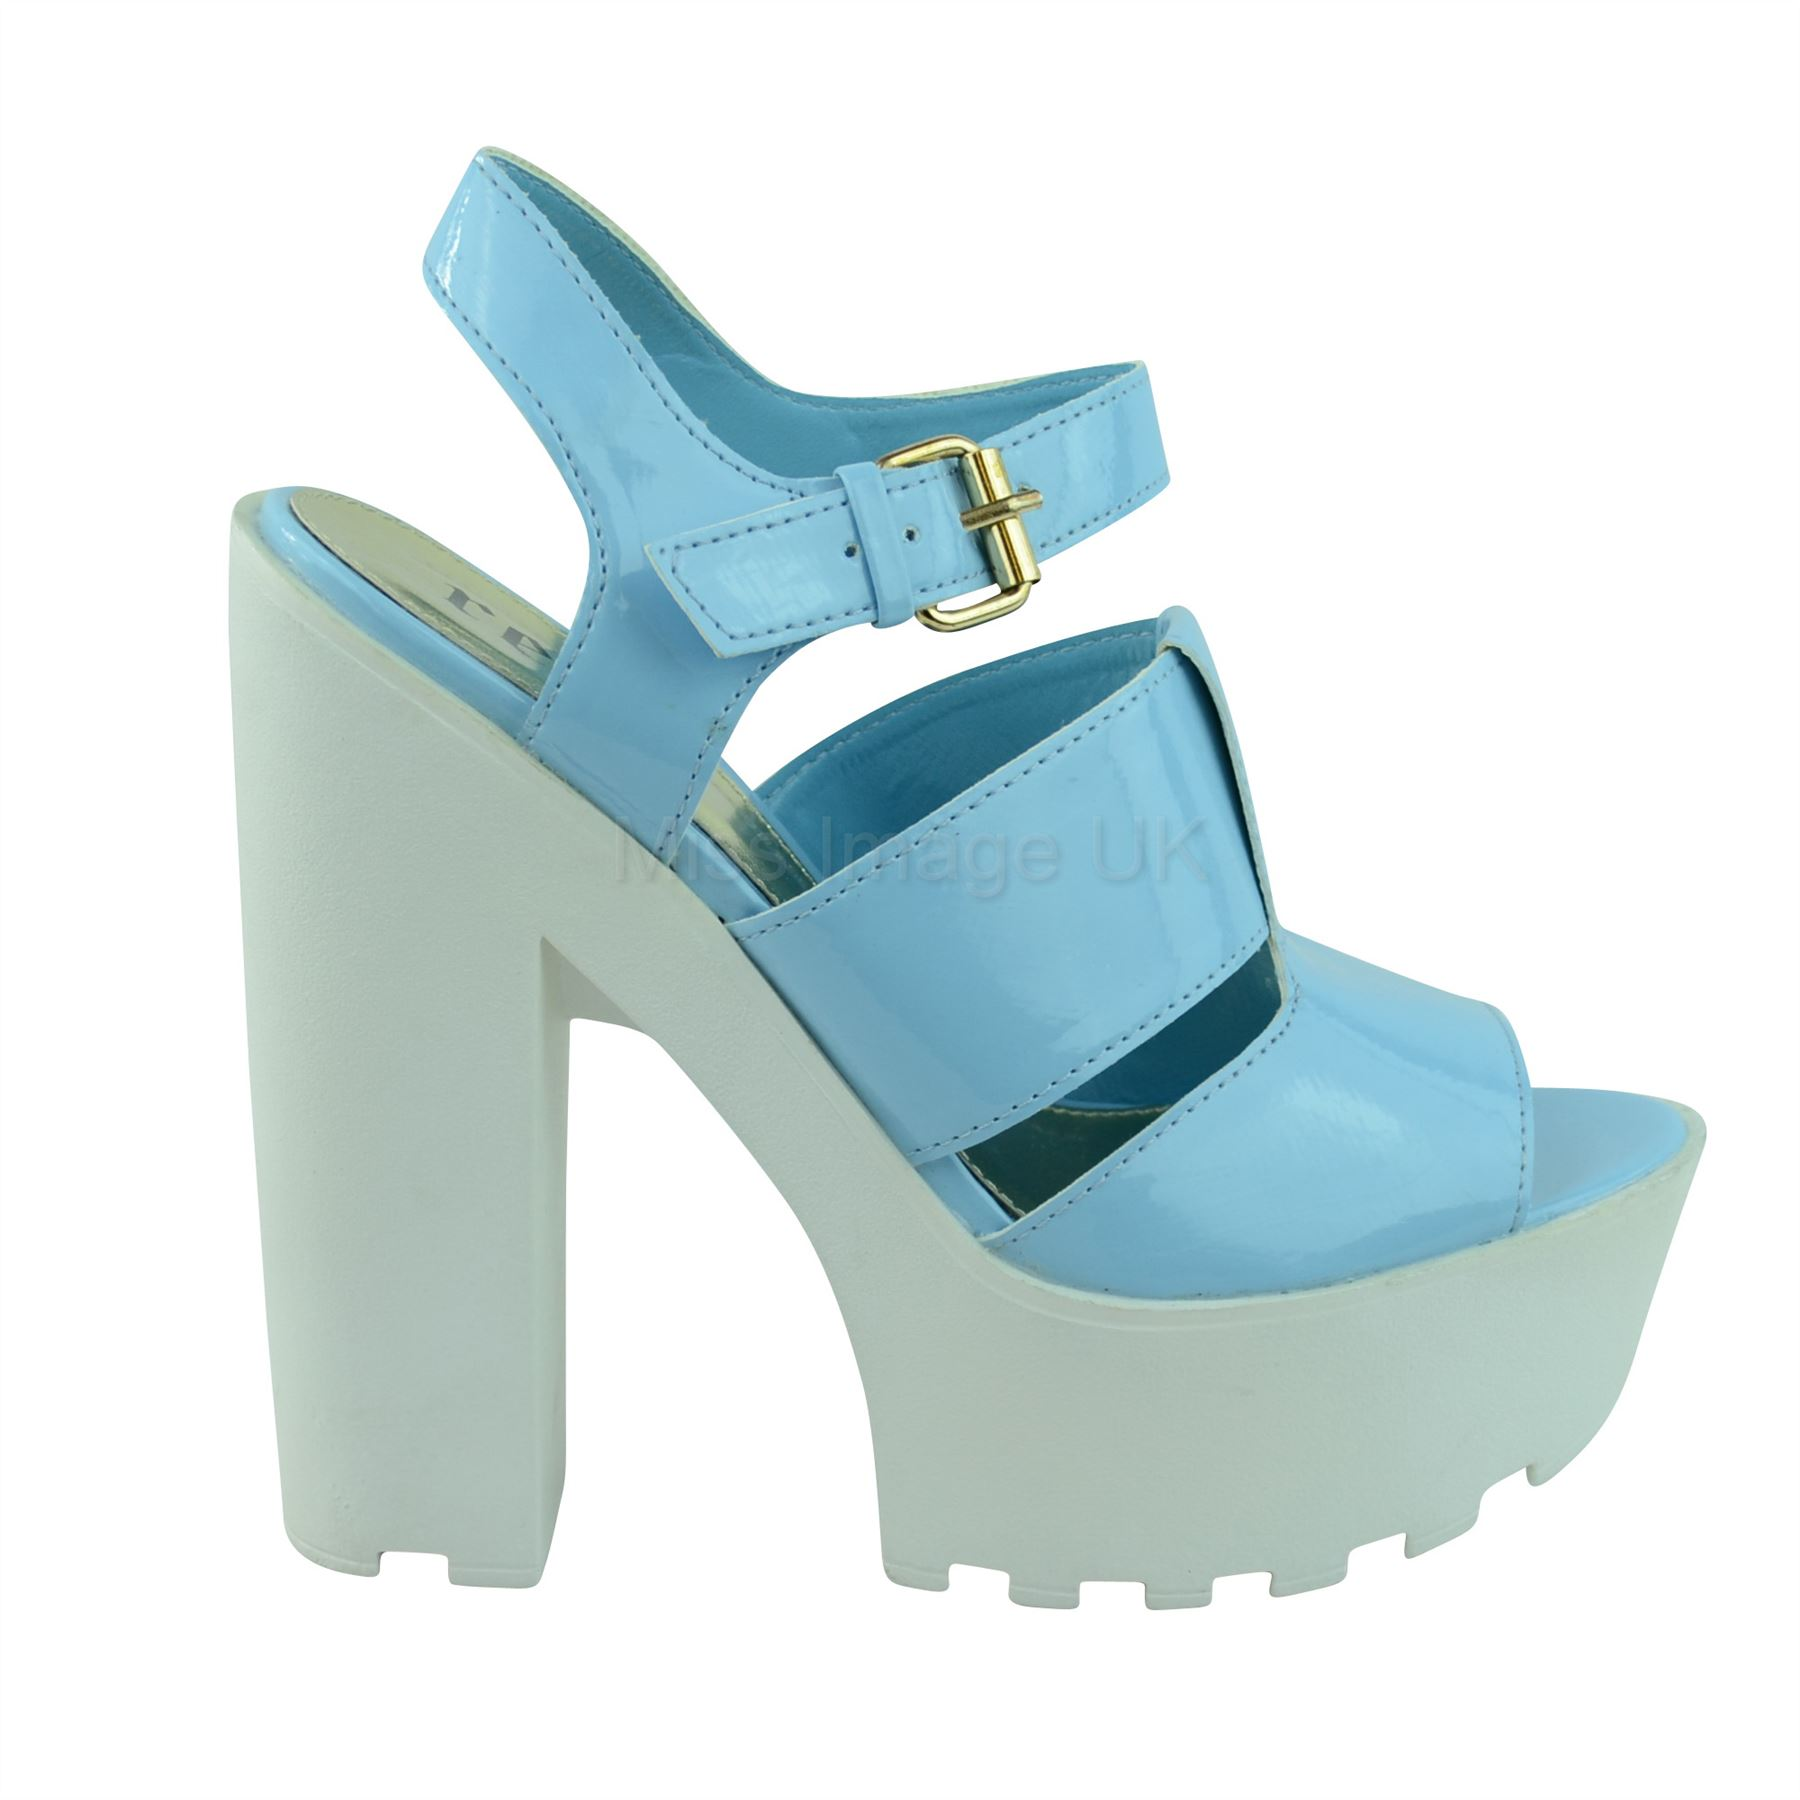 LADIES-WOMENS-CUT-OUT-CHUNKY-SUMMER-SANDALS-HIGH-HEEL-PLATFORM-WEDGES-SHOES-SIZE